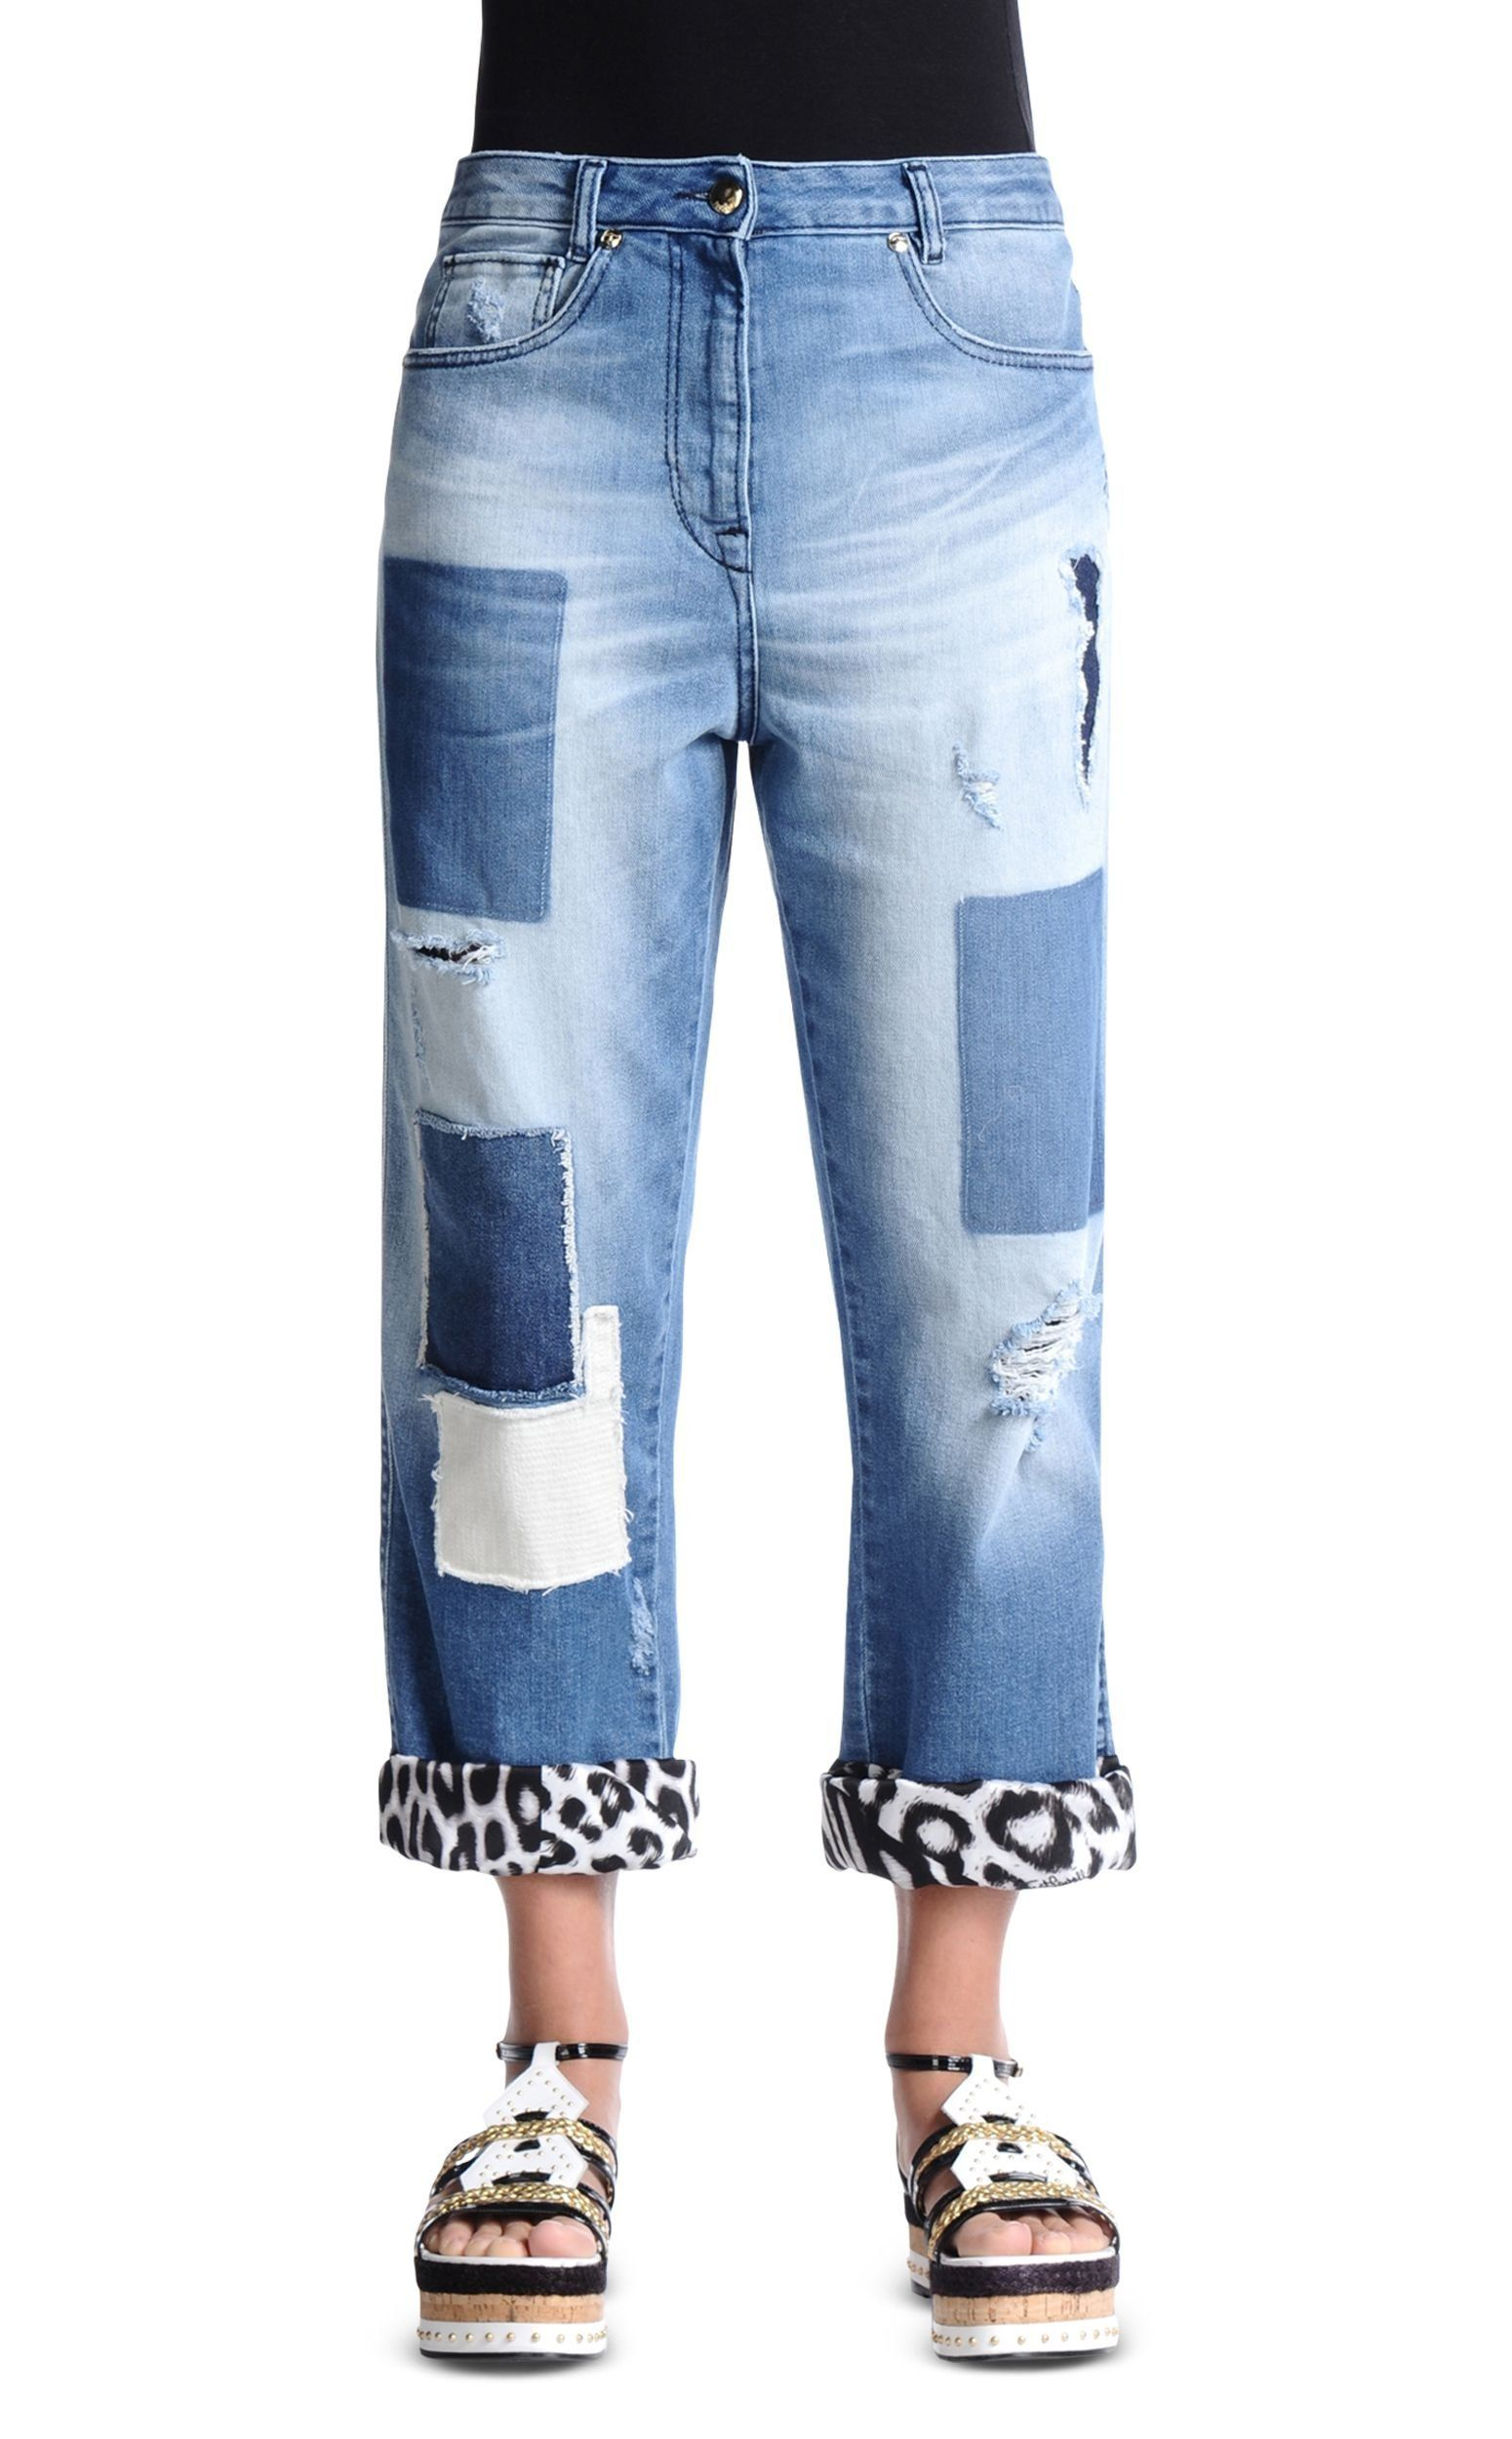 """Just Cavalli Women's Blue Distressed Boyfriend Jeans US 26 IT 40. Material: 98% Cotton 2% Spandex. Made in Italy. Measured Waist: 28"""" Rise in inches: 11.5"""". Inseam: 29"""" Leg Opening: 8""""."""